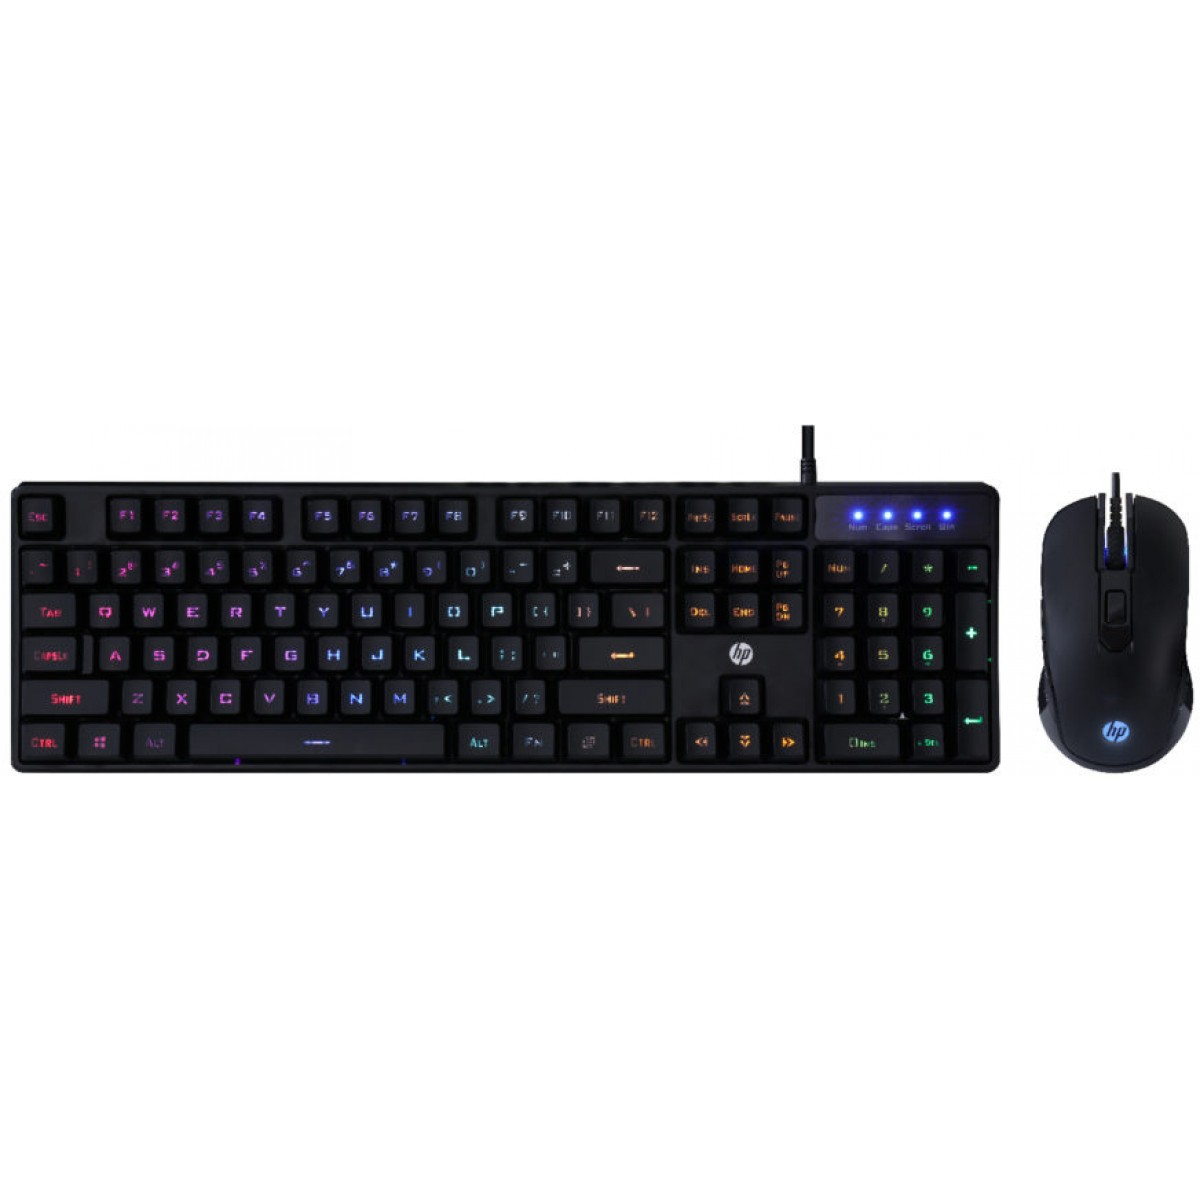 KIT TECL+MOUSE USB GAMING MEMB KM200 PTO HP